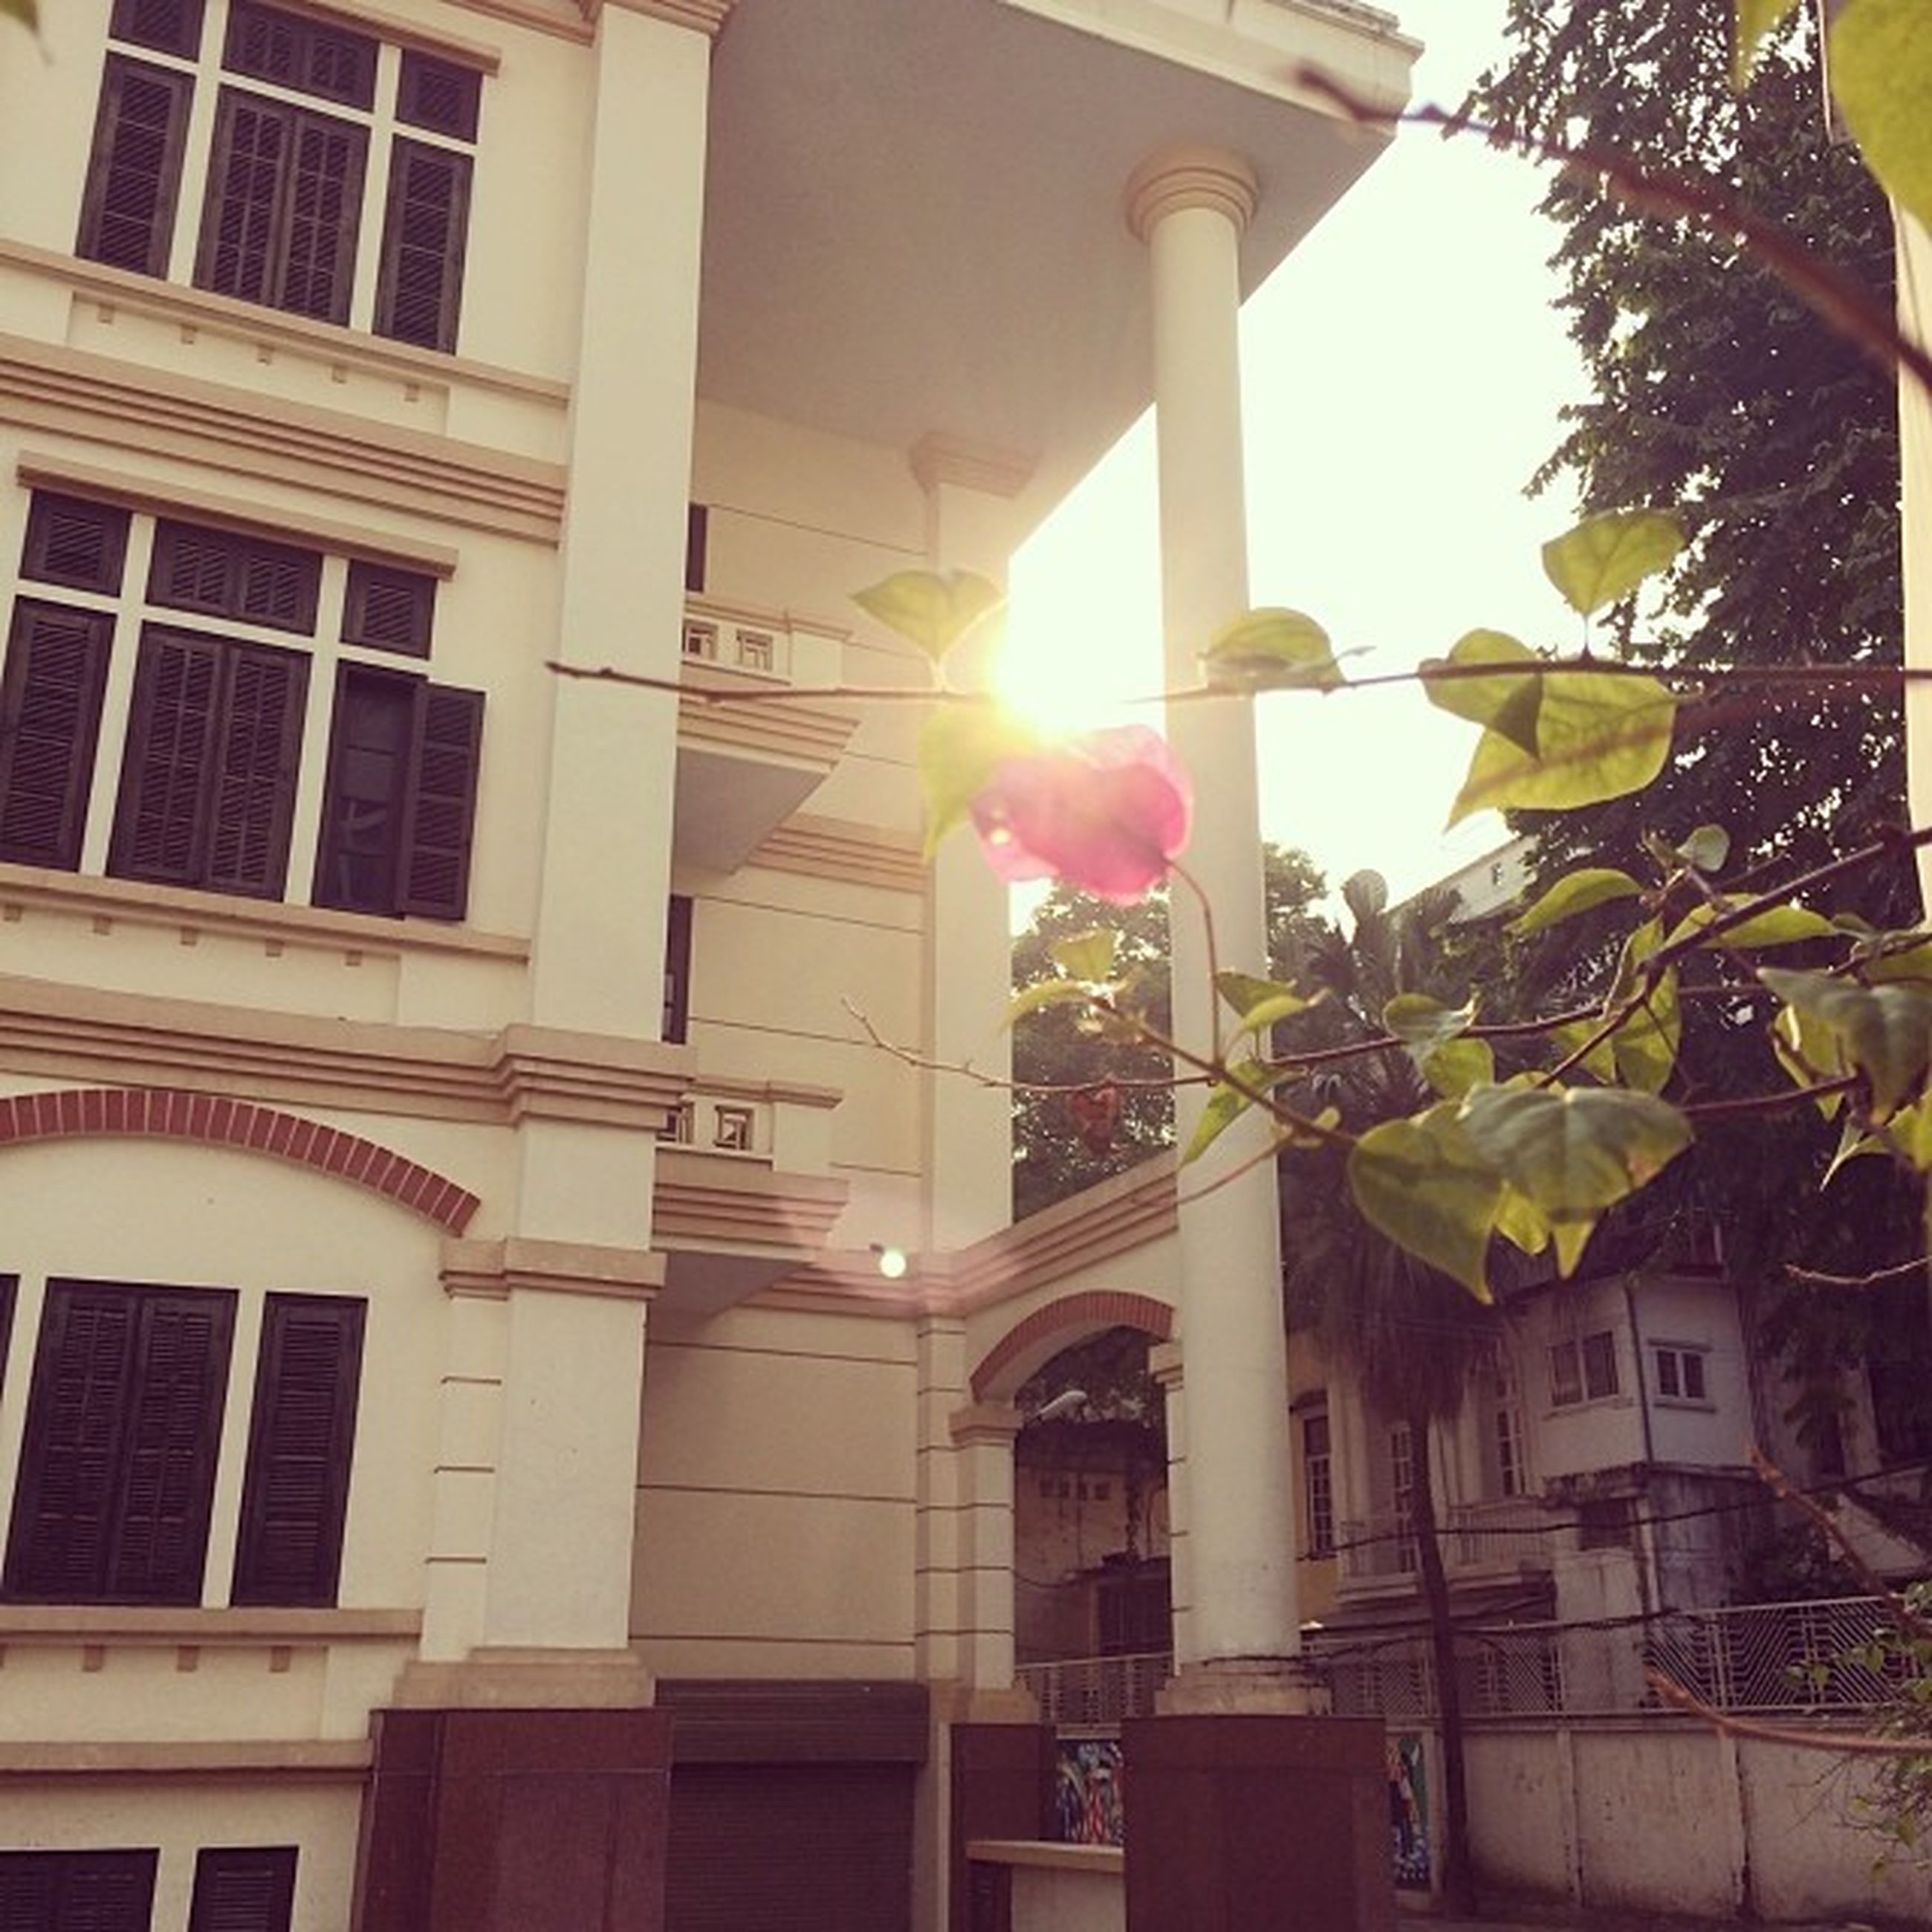 architecture, built structure, building exterior, low angle view, window, sunlight, building, residential building, residential structure, house, balcony, sun, day, no people, city, sunbeam, outdoors, tree, glass - material, sky